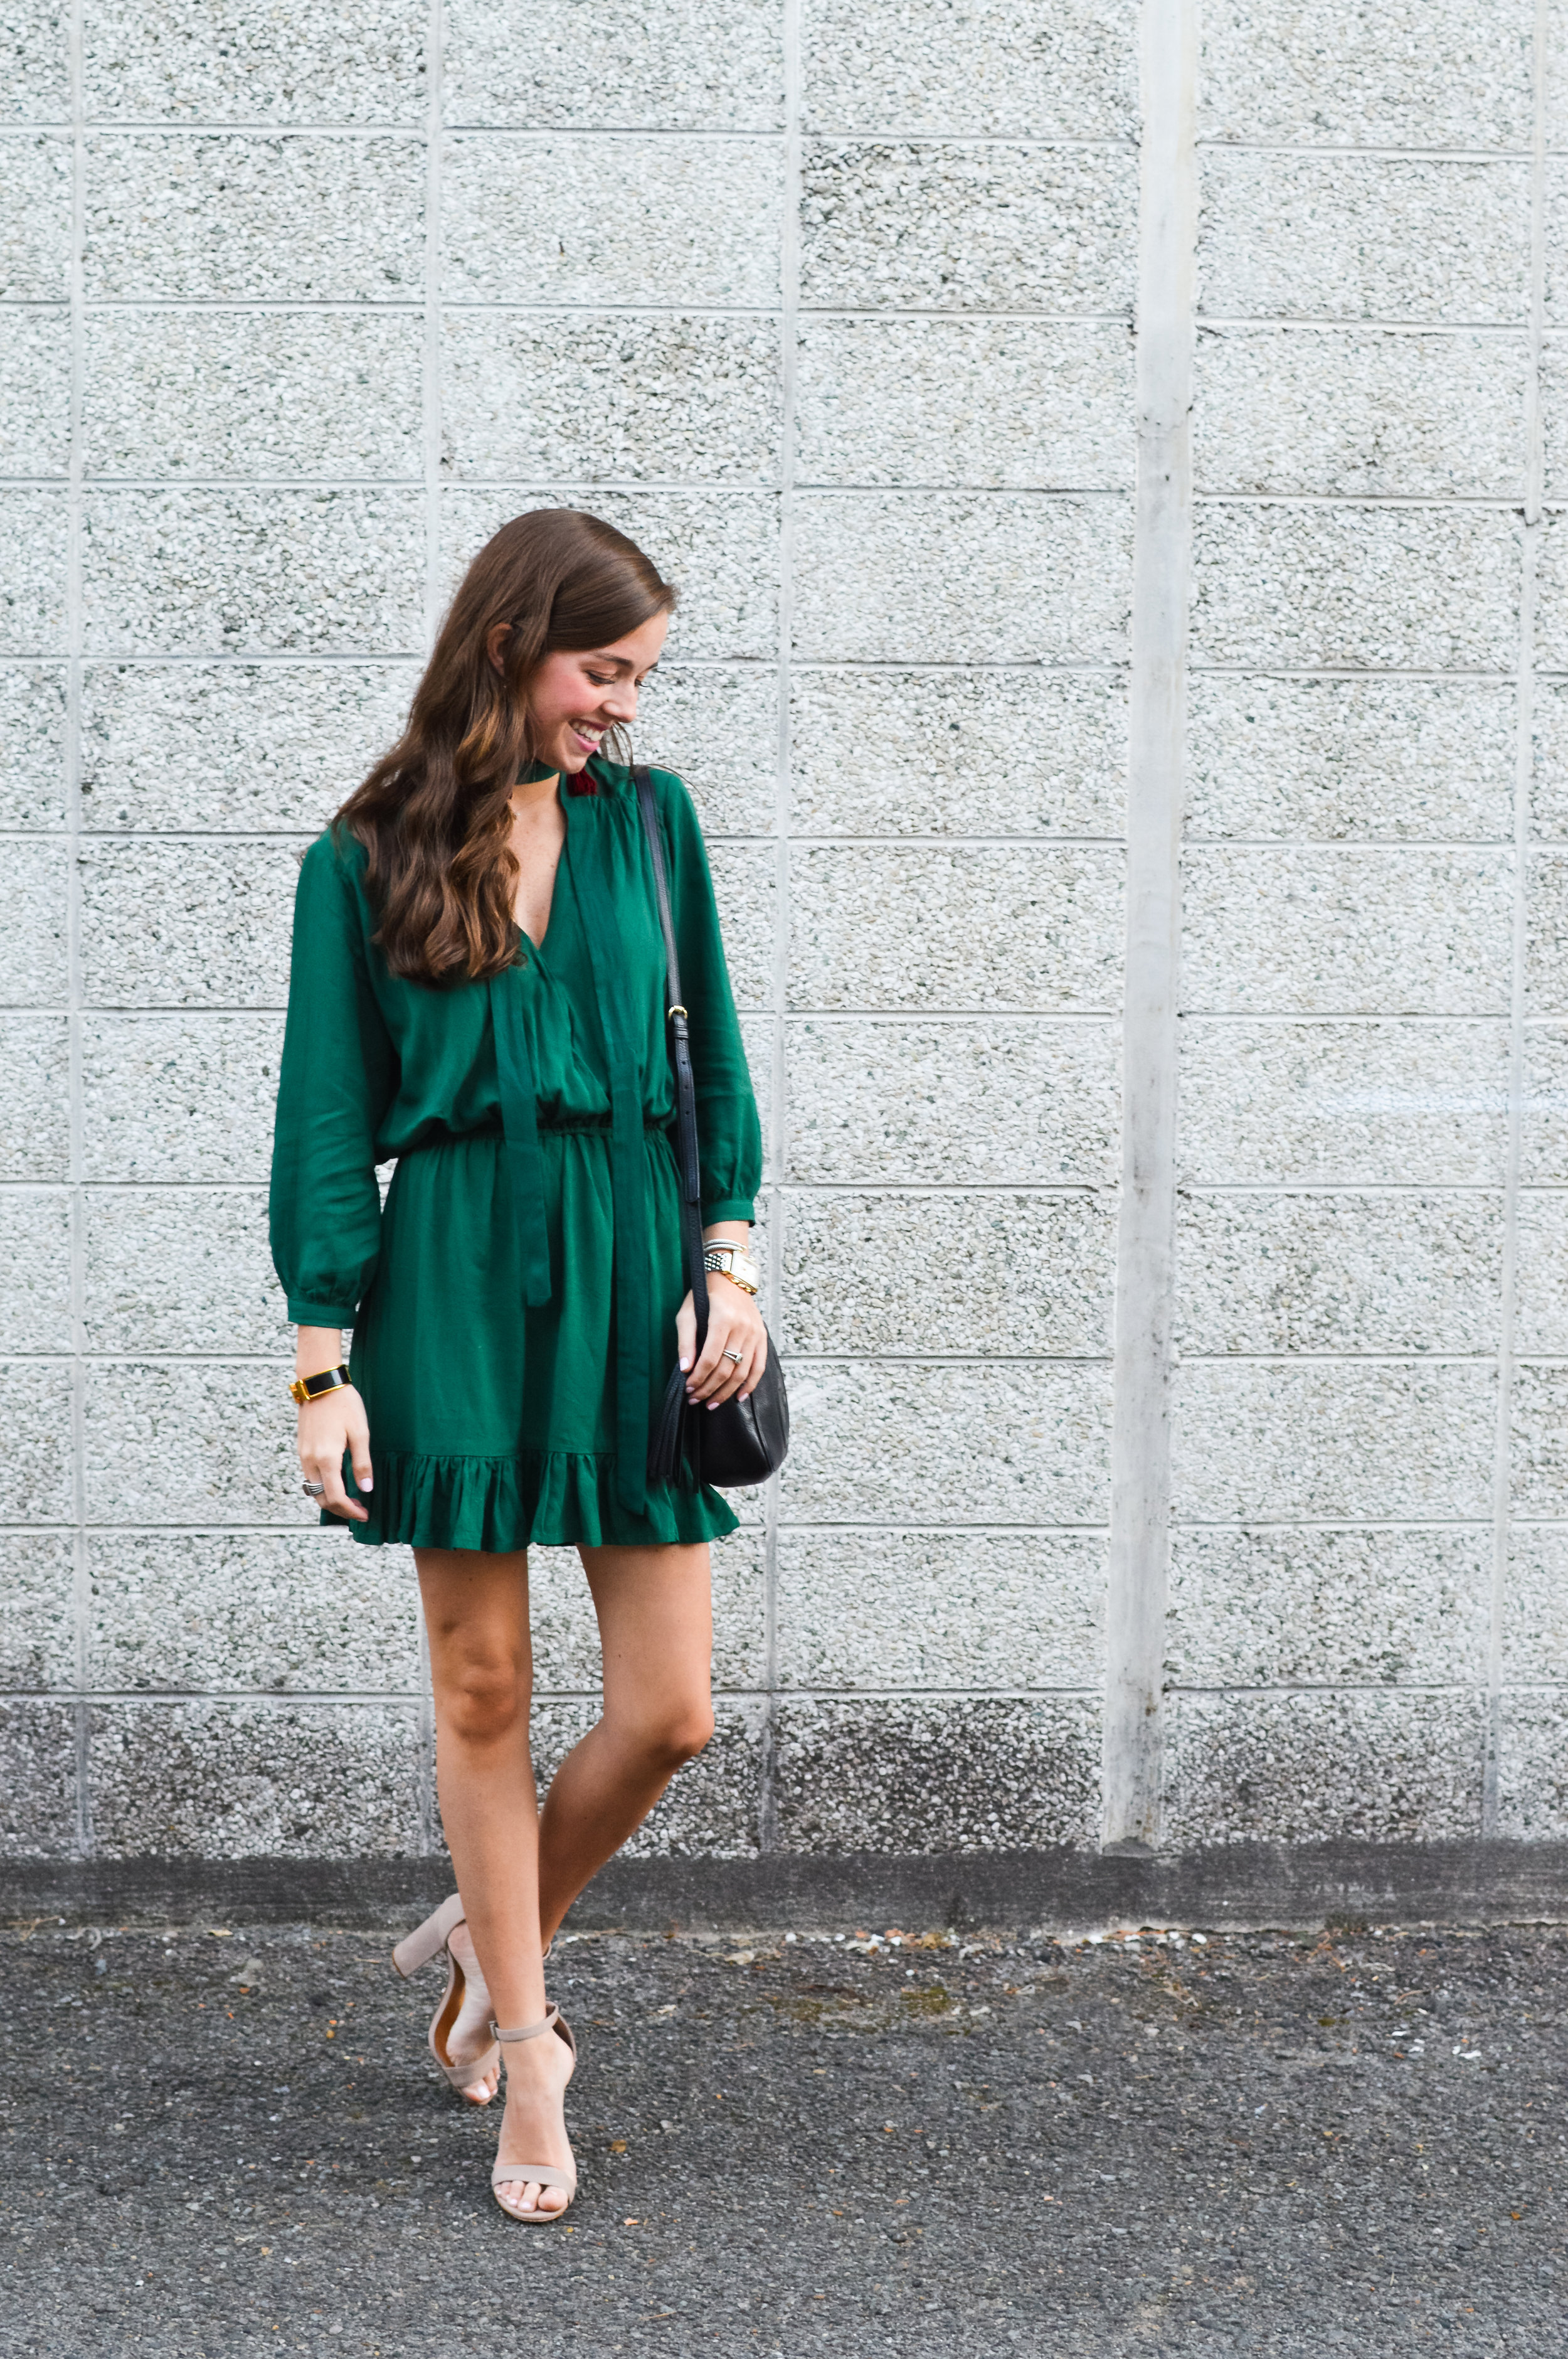 fashion blogger lcb style green dress tassel earring  (3 of 30).jpg